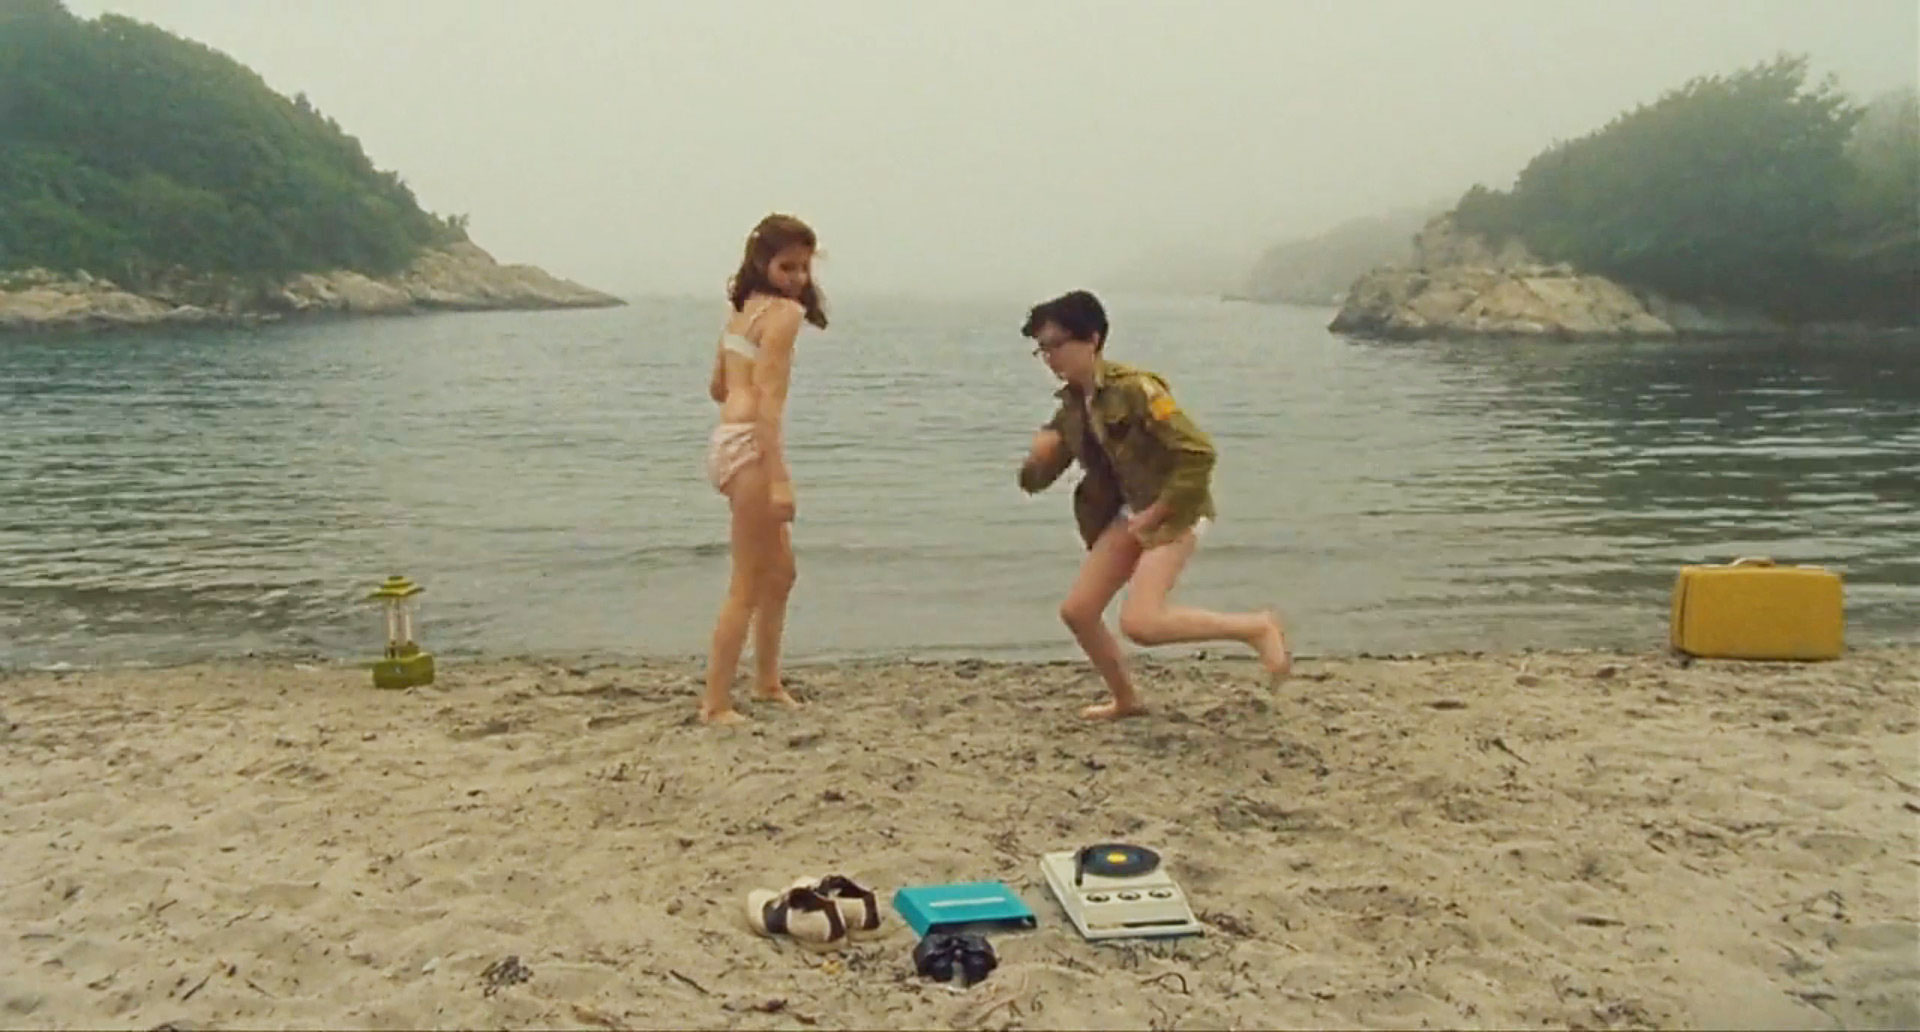 Beach dance in Wes Anderson's Moonrise Kingdom